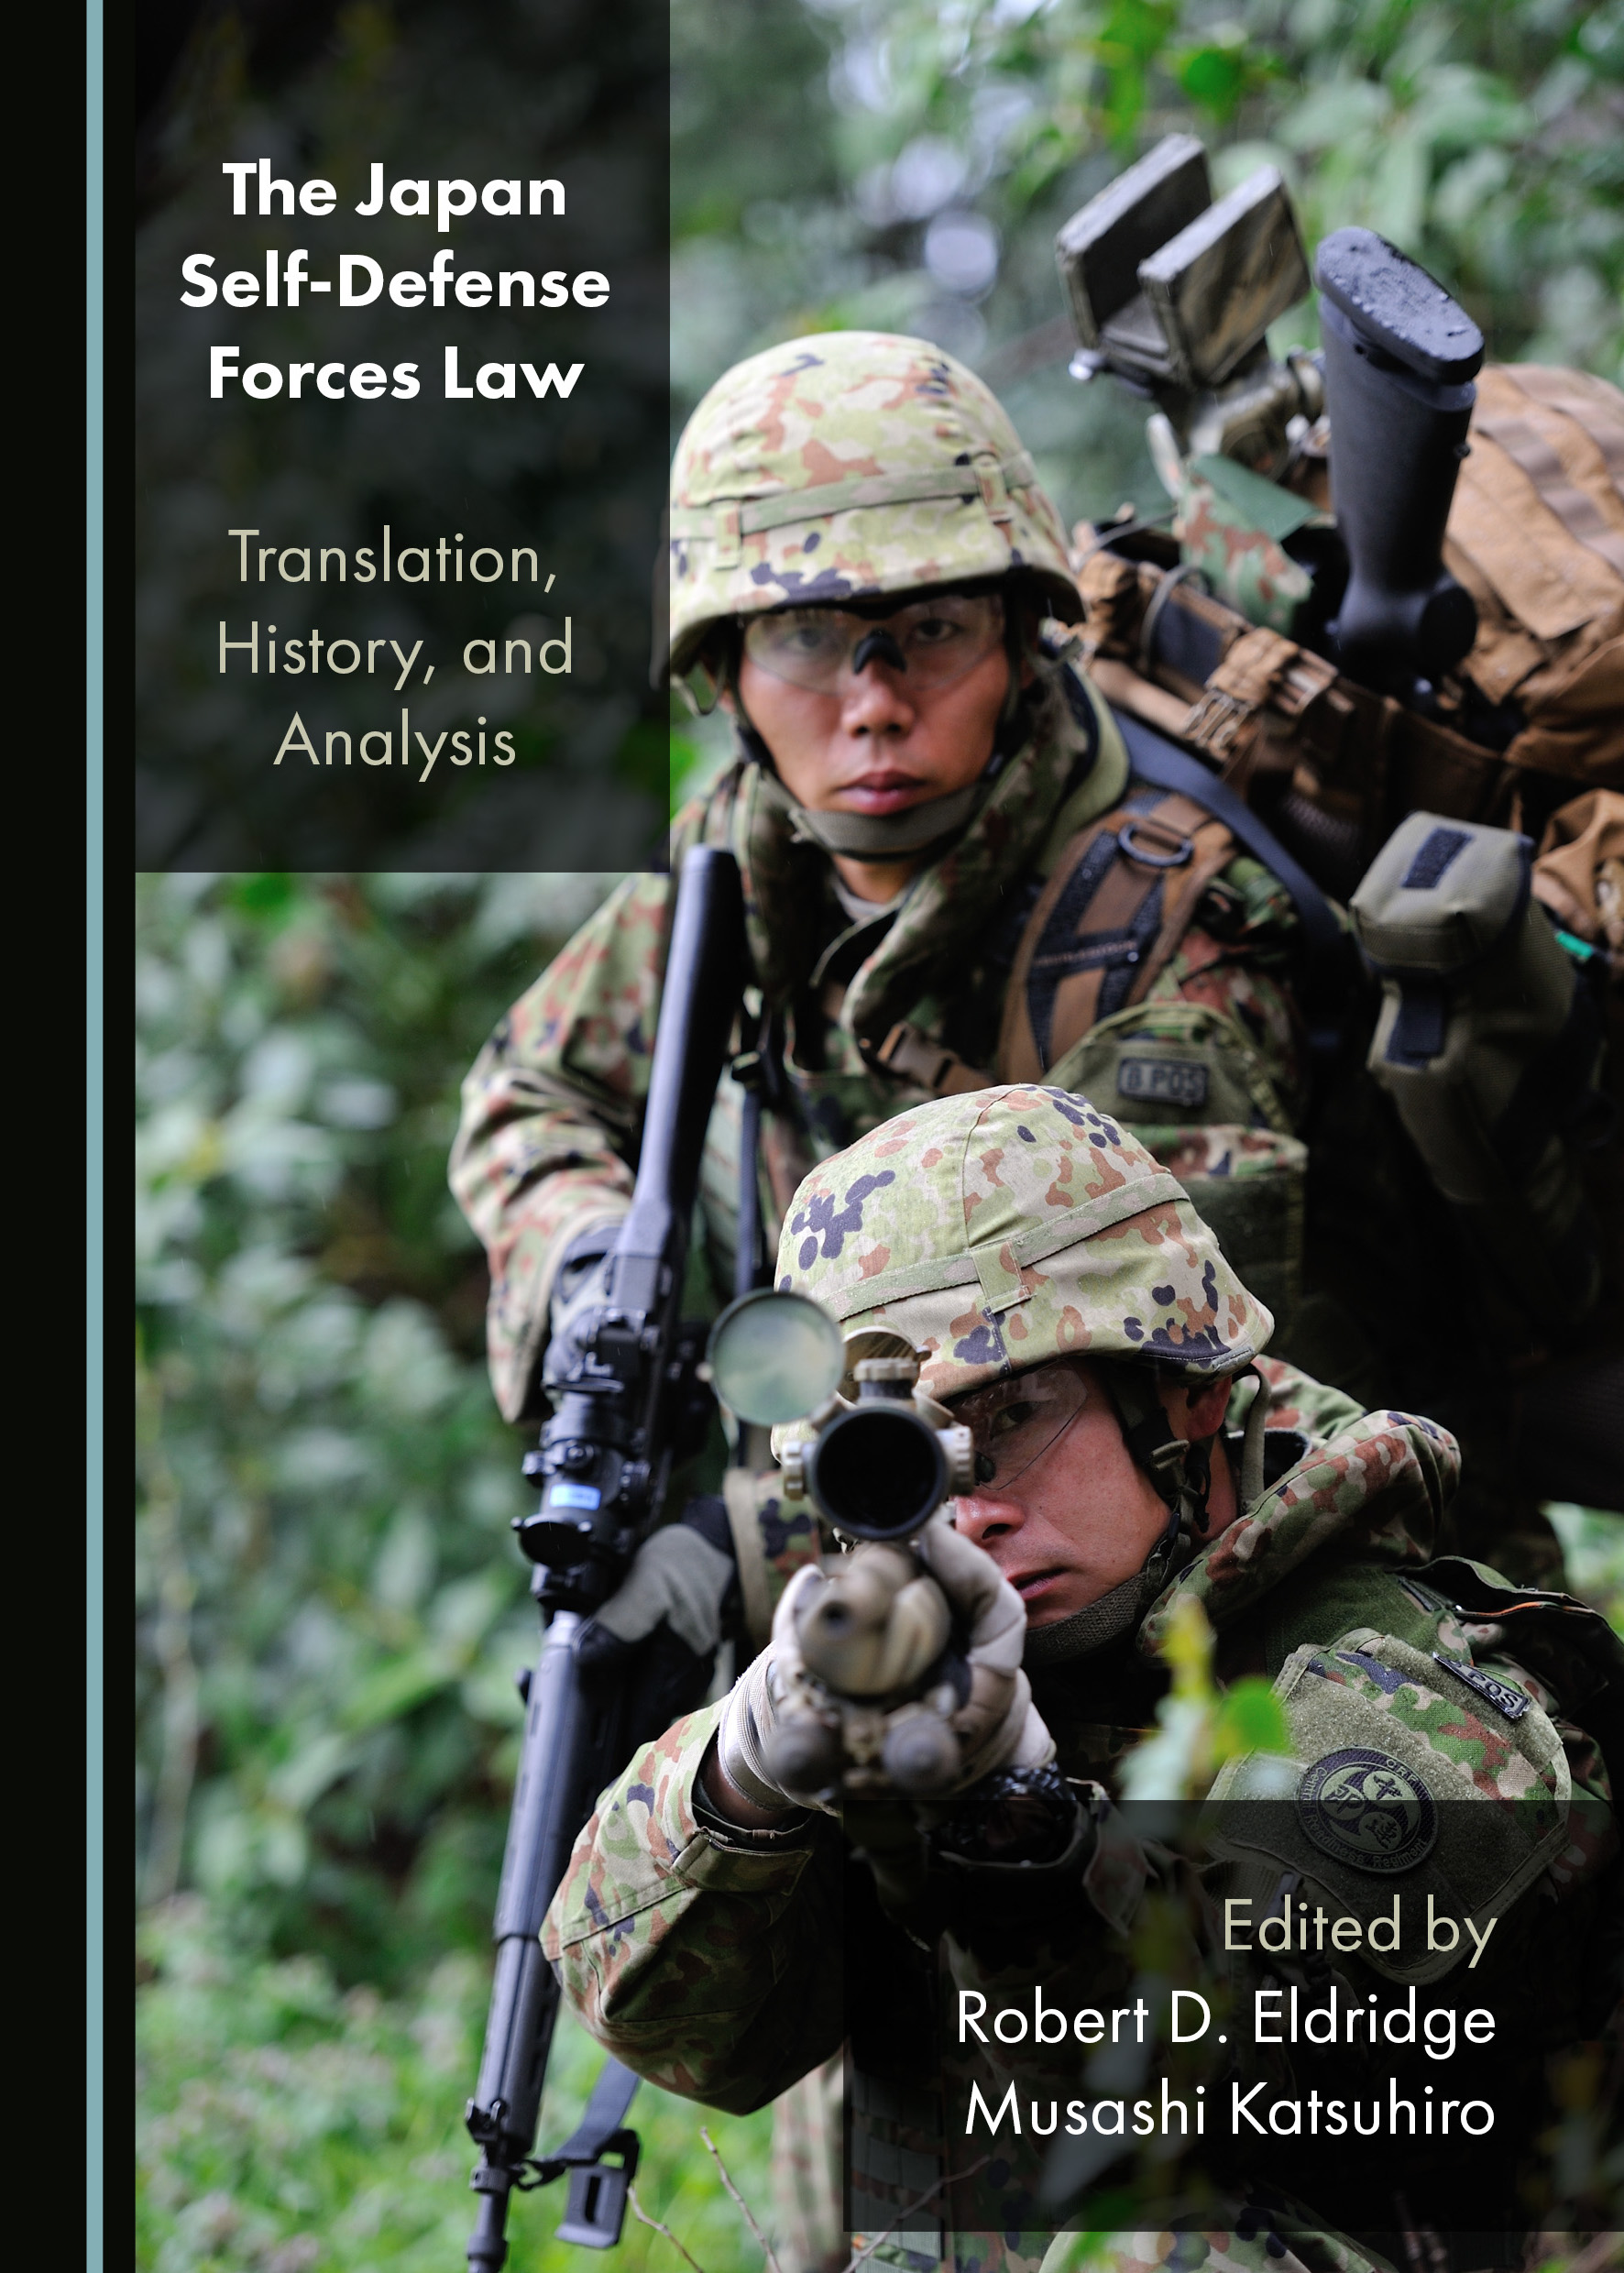 The Japan Self-Defense Forces Law: Translation, History, and Analysis